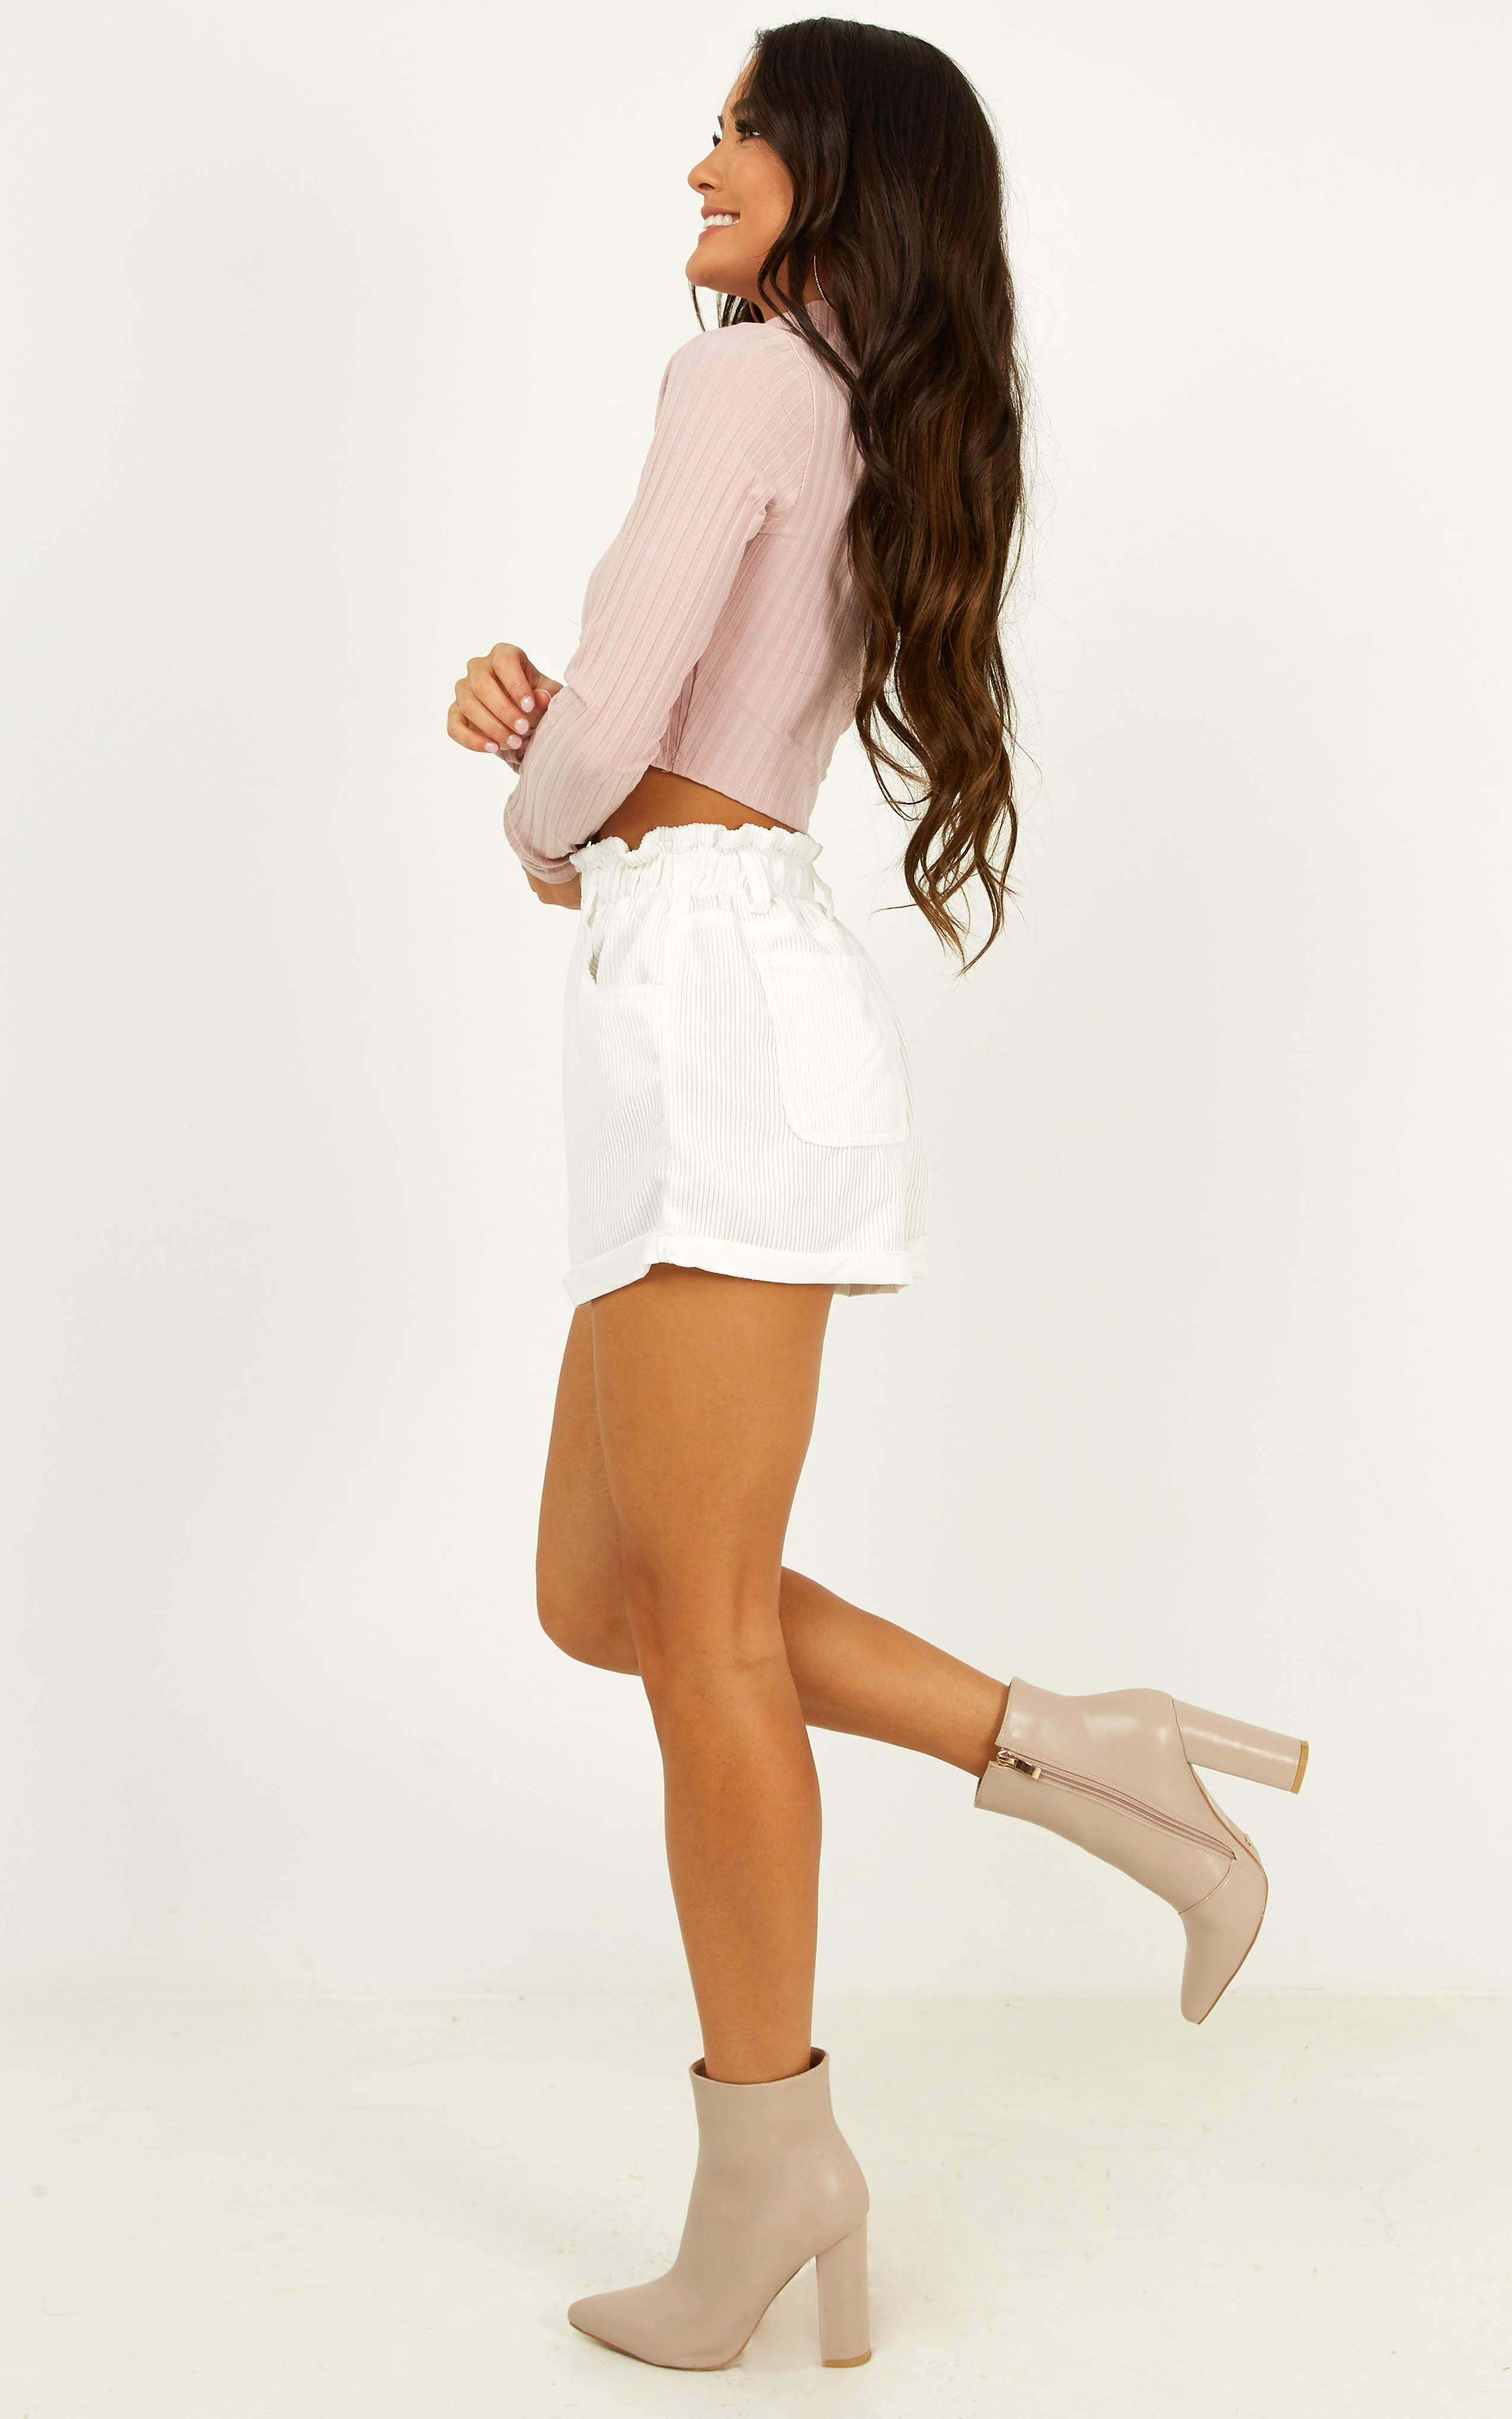 Sinking Sand Shorts in white cord - 14 (XL), White, hi-res image number null